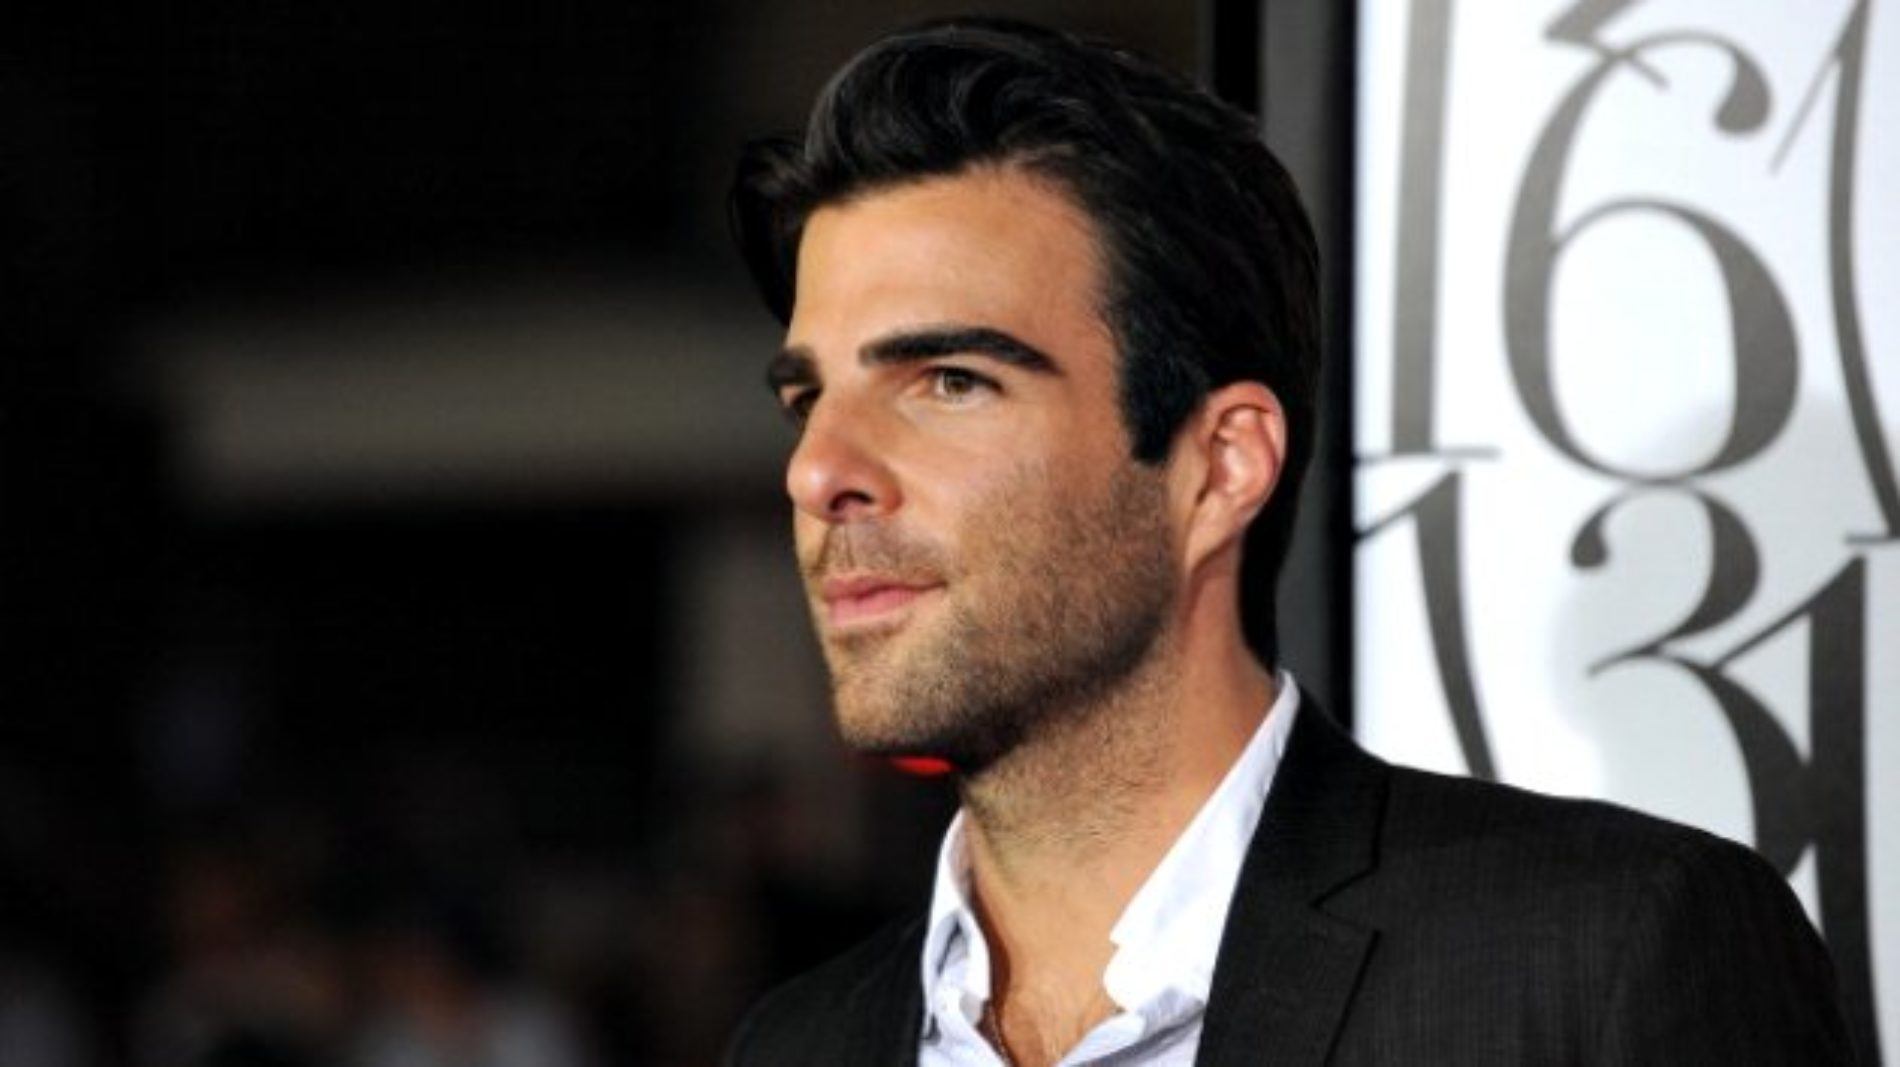 Well, It Seems Zachary Quinto Has Joined The Gay Bachelors Anonymous